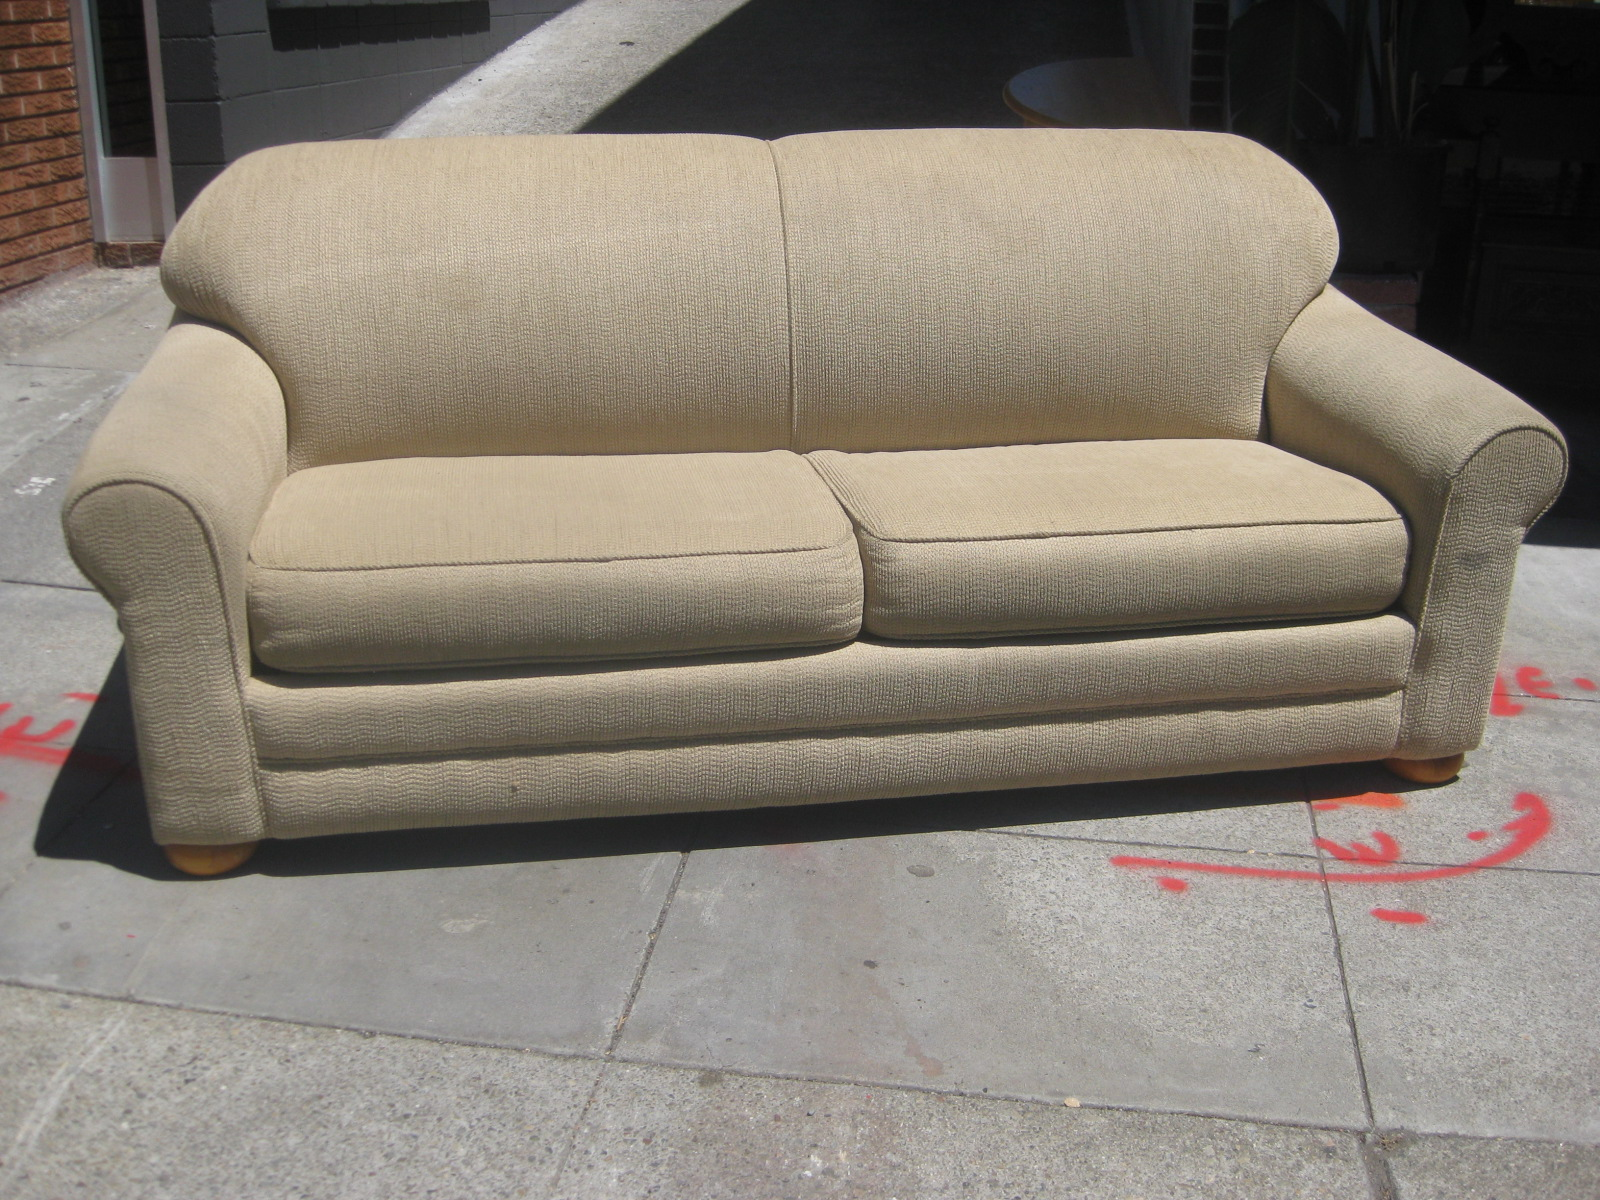 Uhuru Furniture Amp Collectibles Sold Sealy Sofabed 200